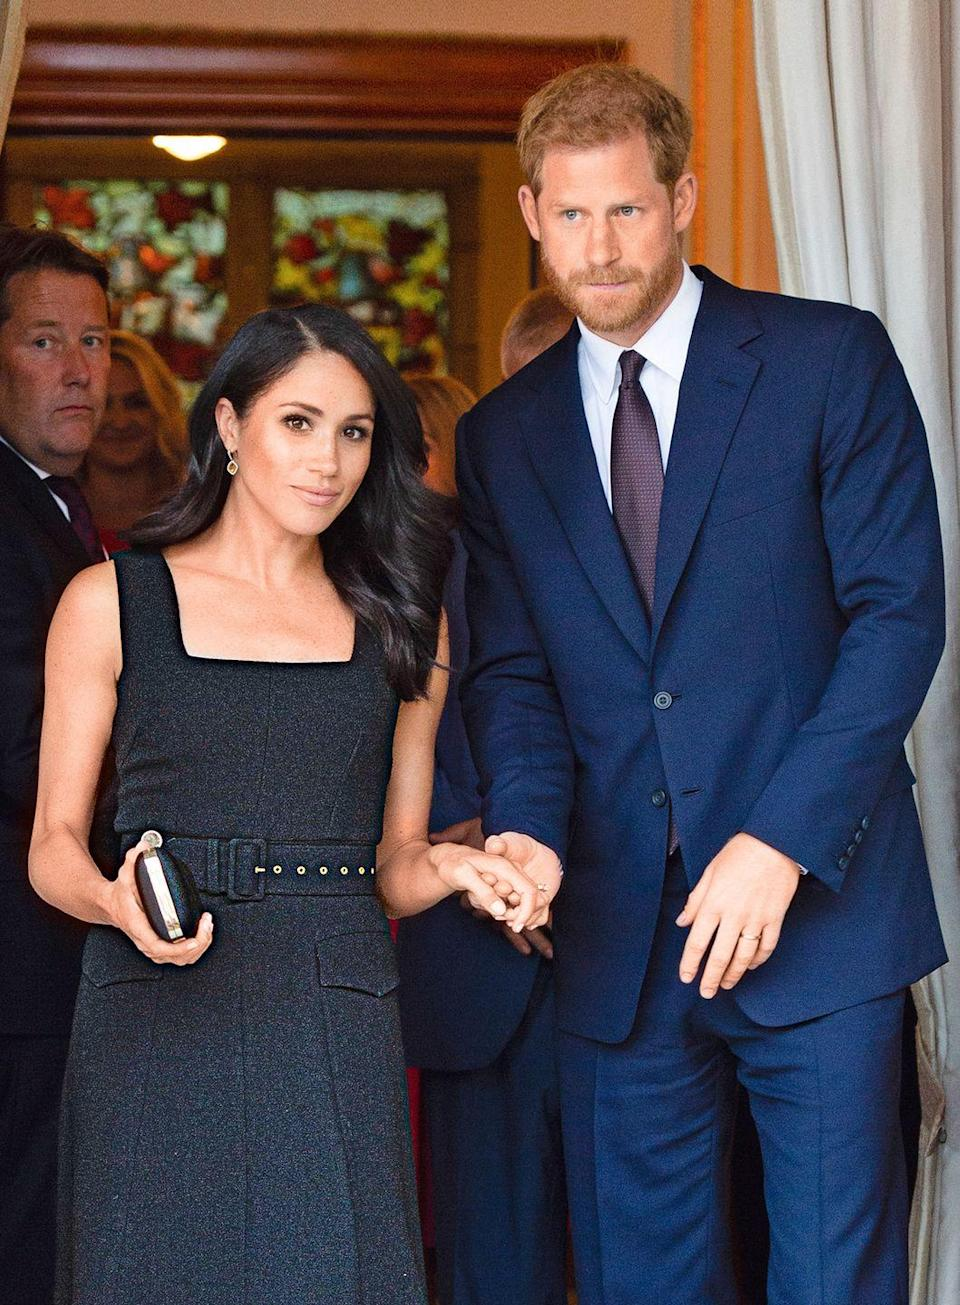 Photo credit: Meghan Markle e Principe Harry